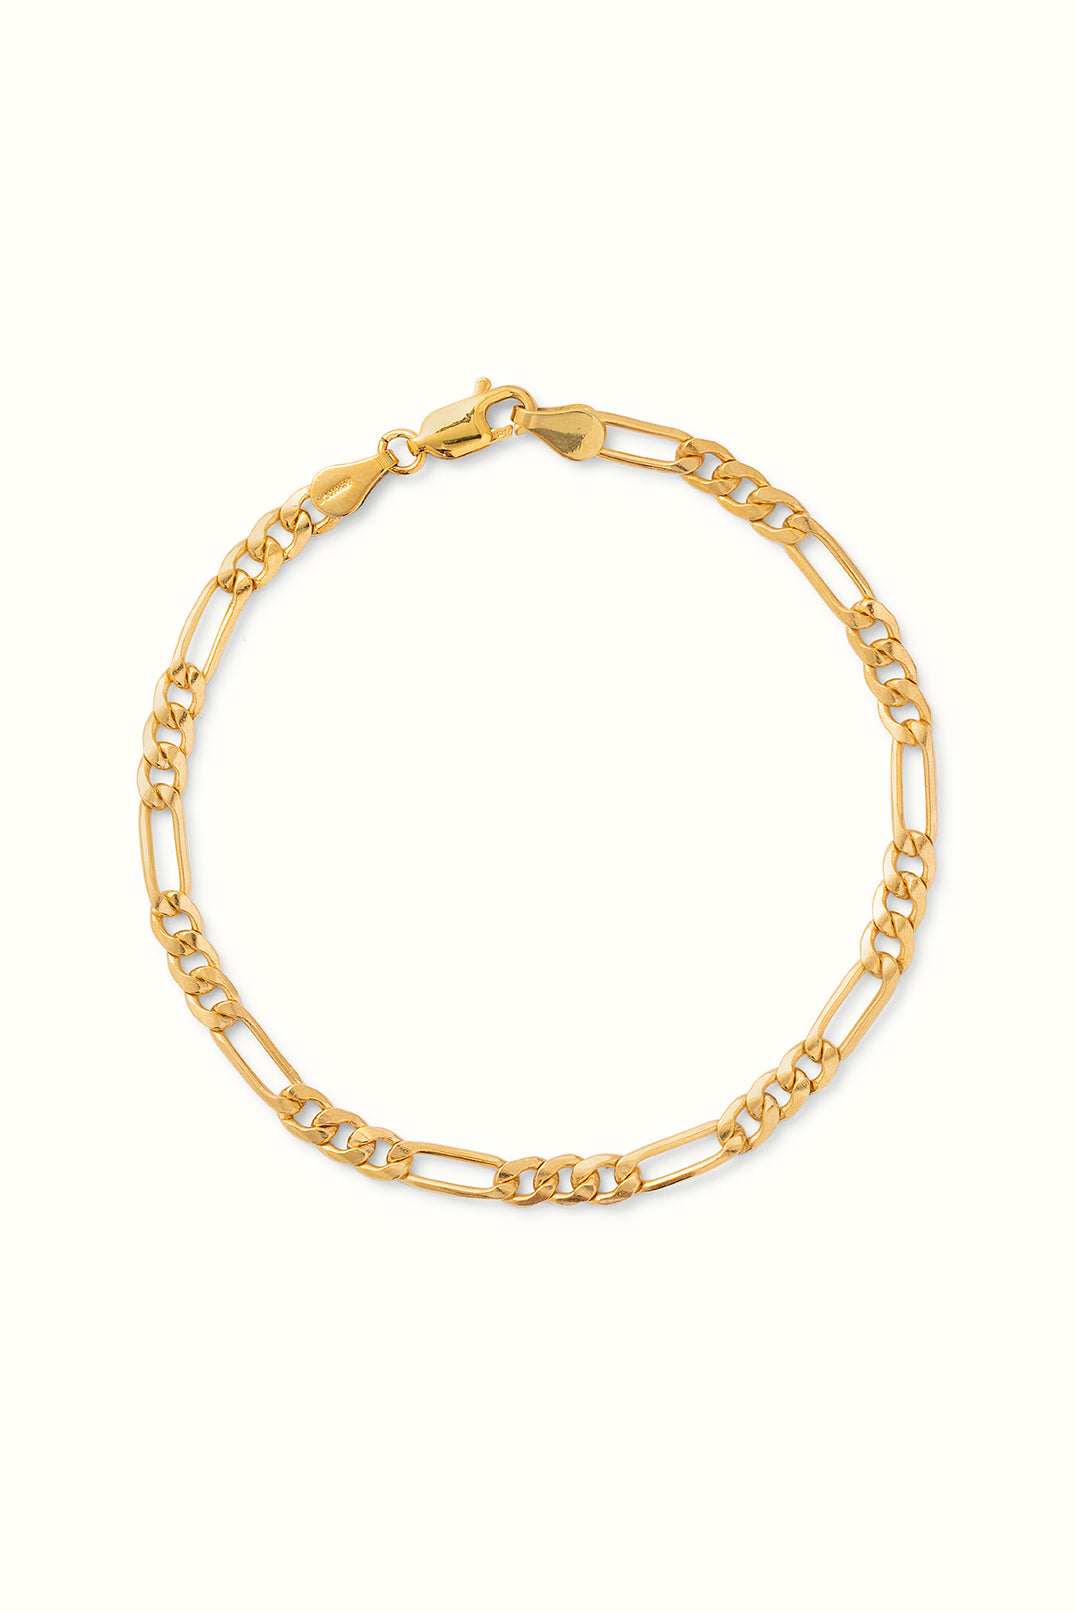 a product picture of a chunky gold filled figaro chain bracelet lying on a white surface